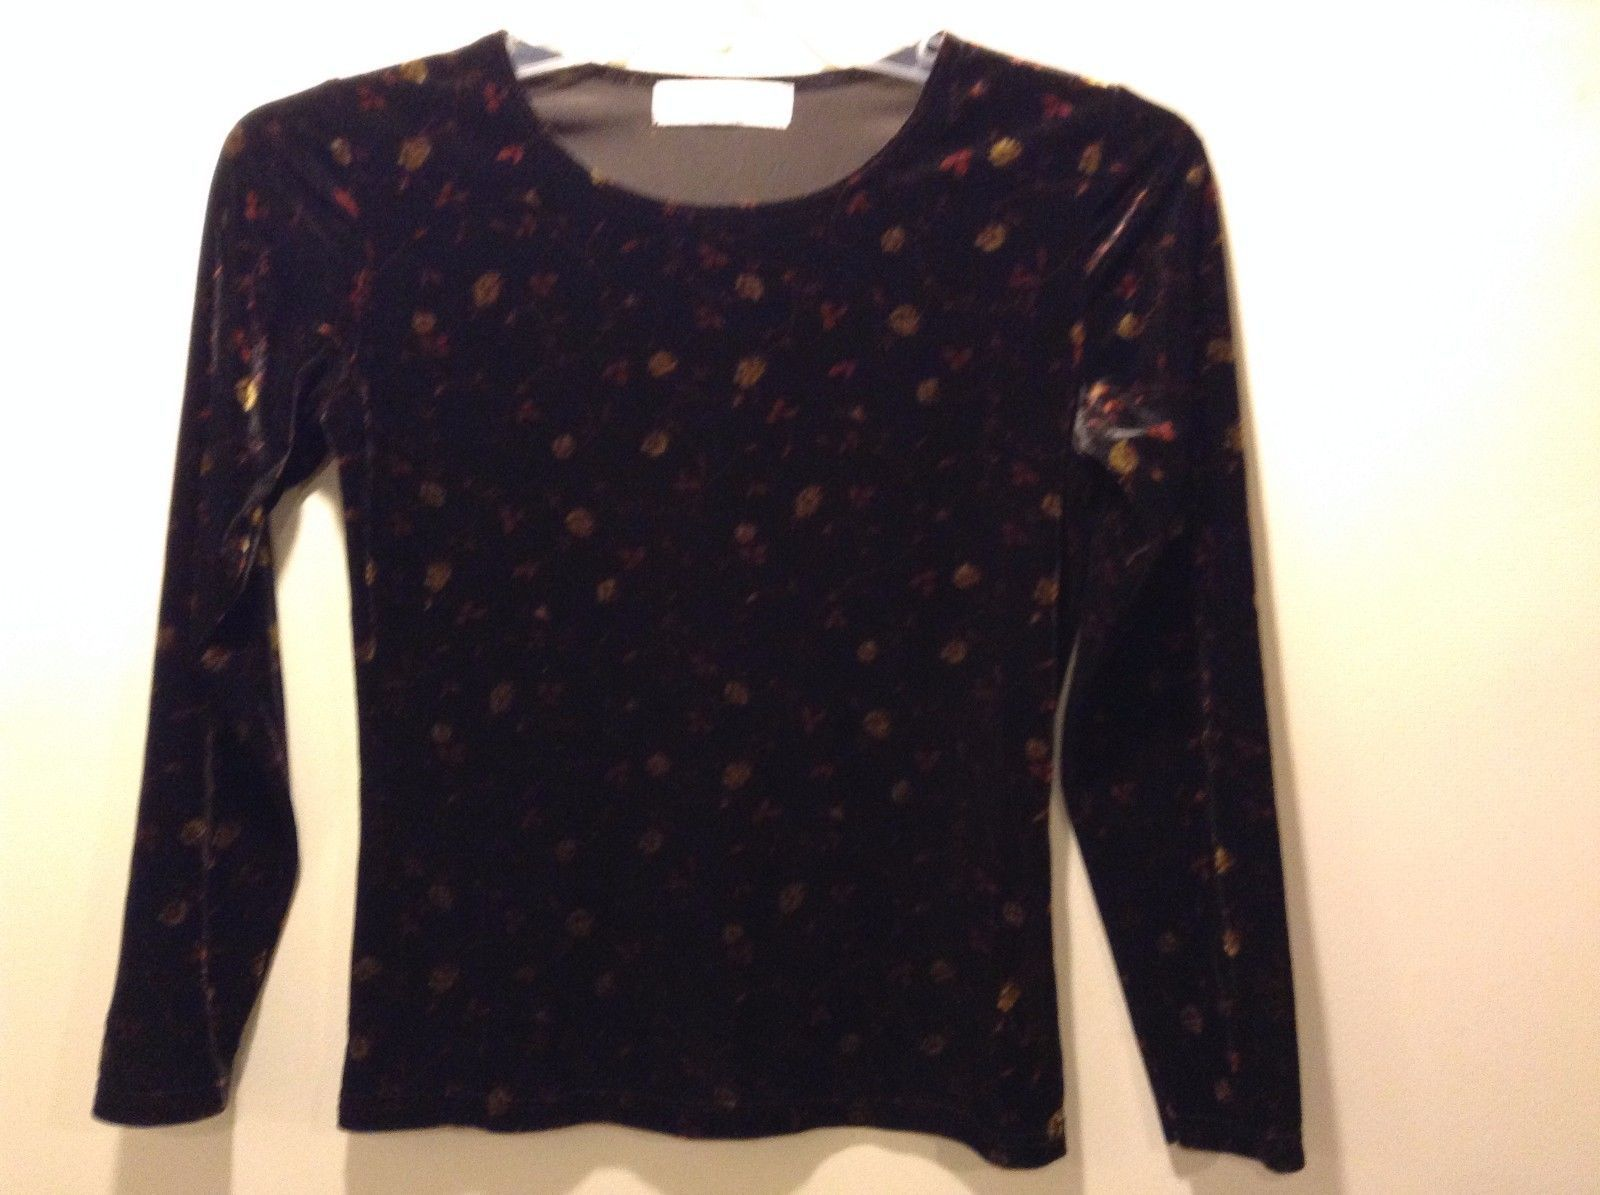 Petite Sophisticate Velvet Scoop Neck Black w Red Gold Flowers Long Sleeve Top